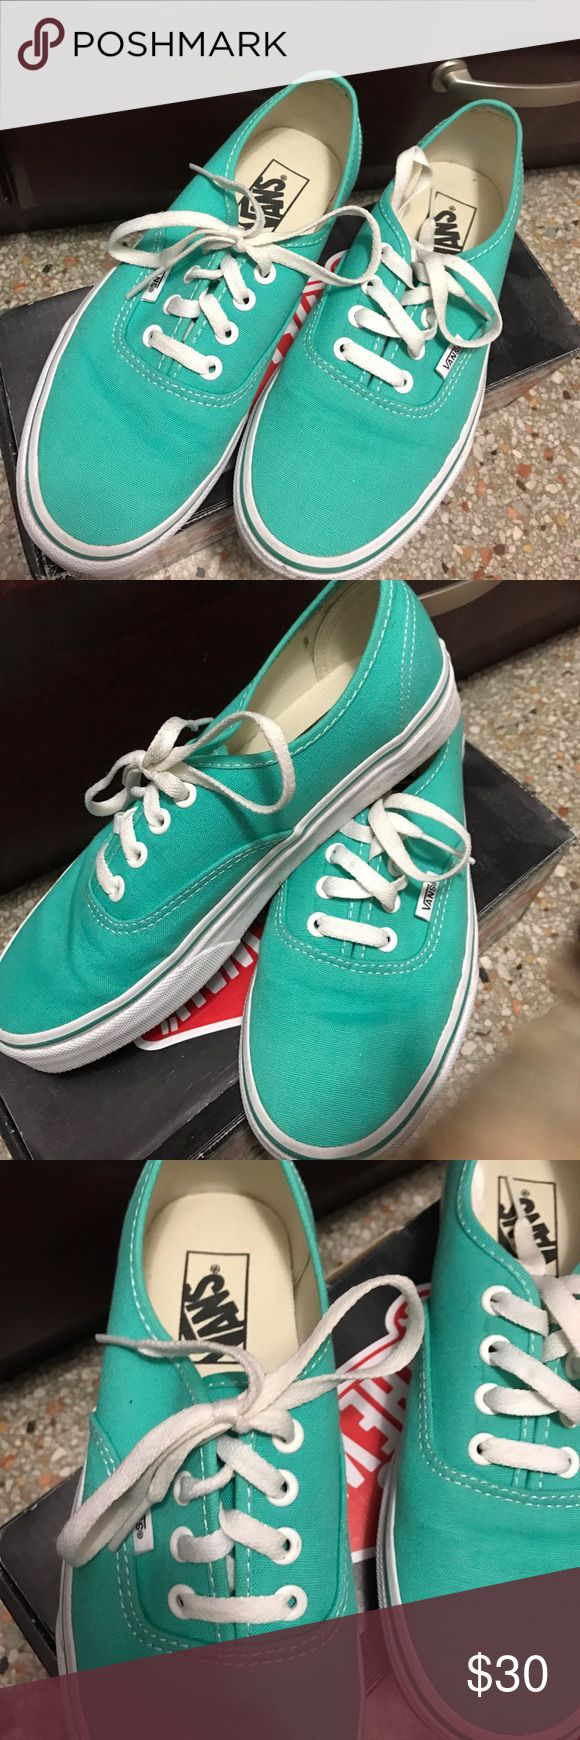 Women's teal vans Women Authentic Vans collection. Teal blue with white. Bought these in Cali, wore them once & they ended up being the wrong size. They've been sitting around for 2 years 😞 unisex sizing: women's 7/ men 5.5 Vans Shoes Sneakers